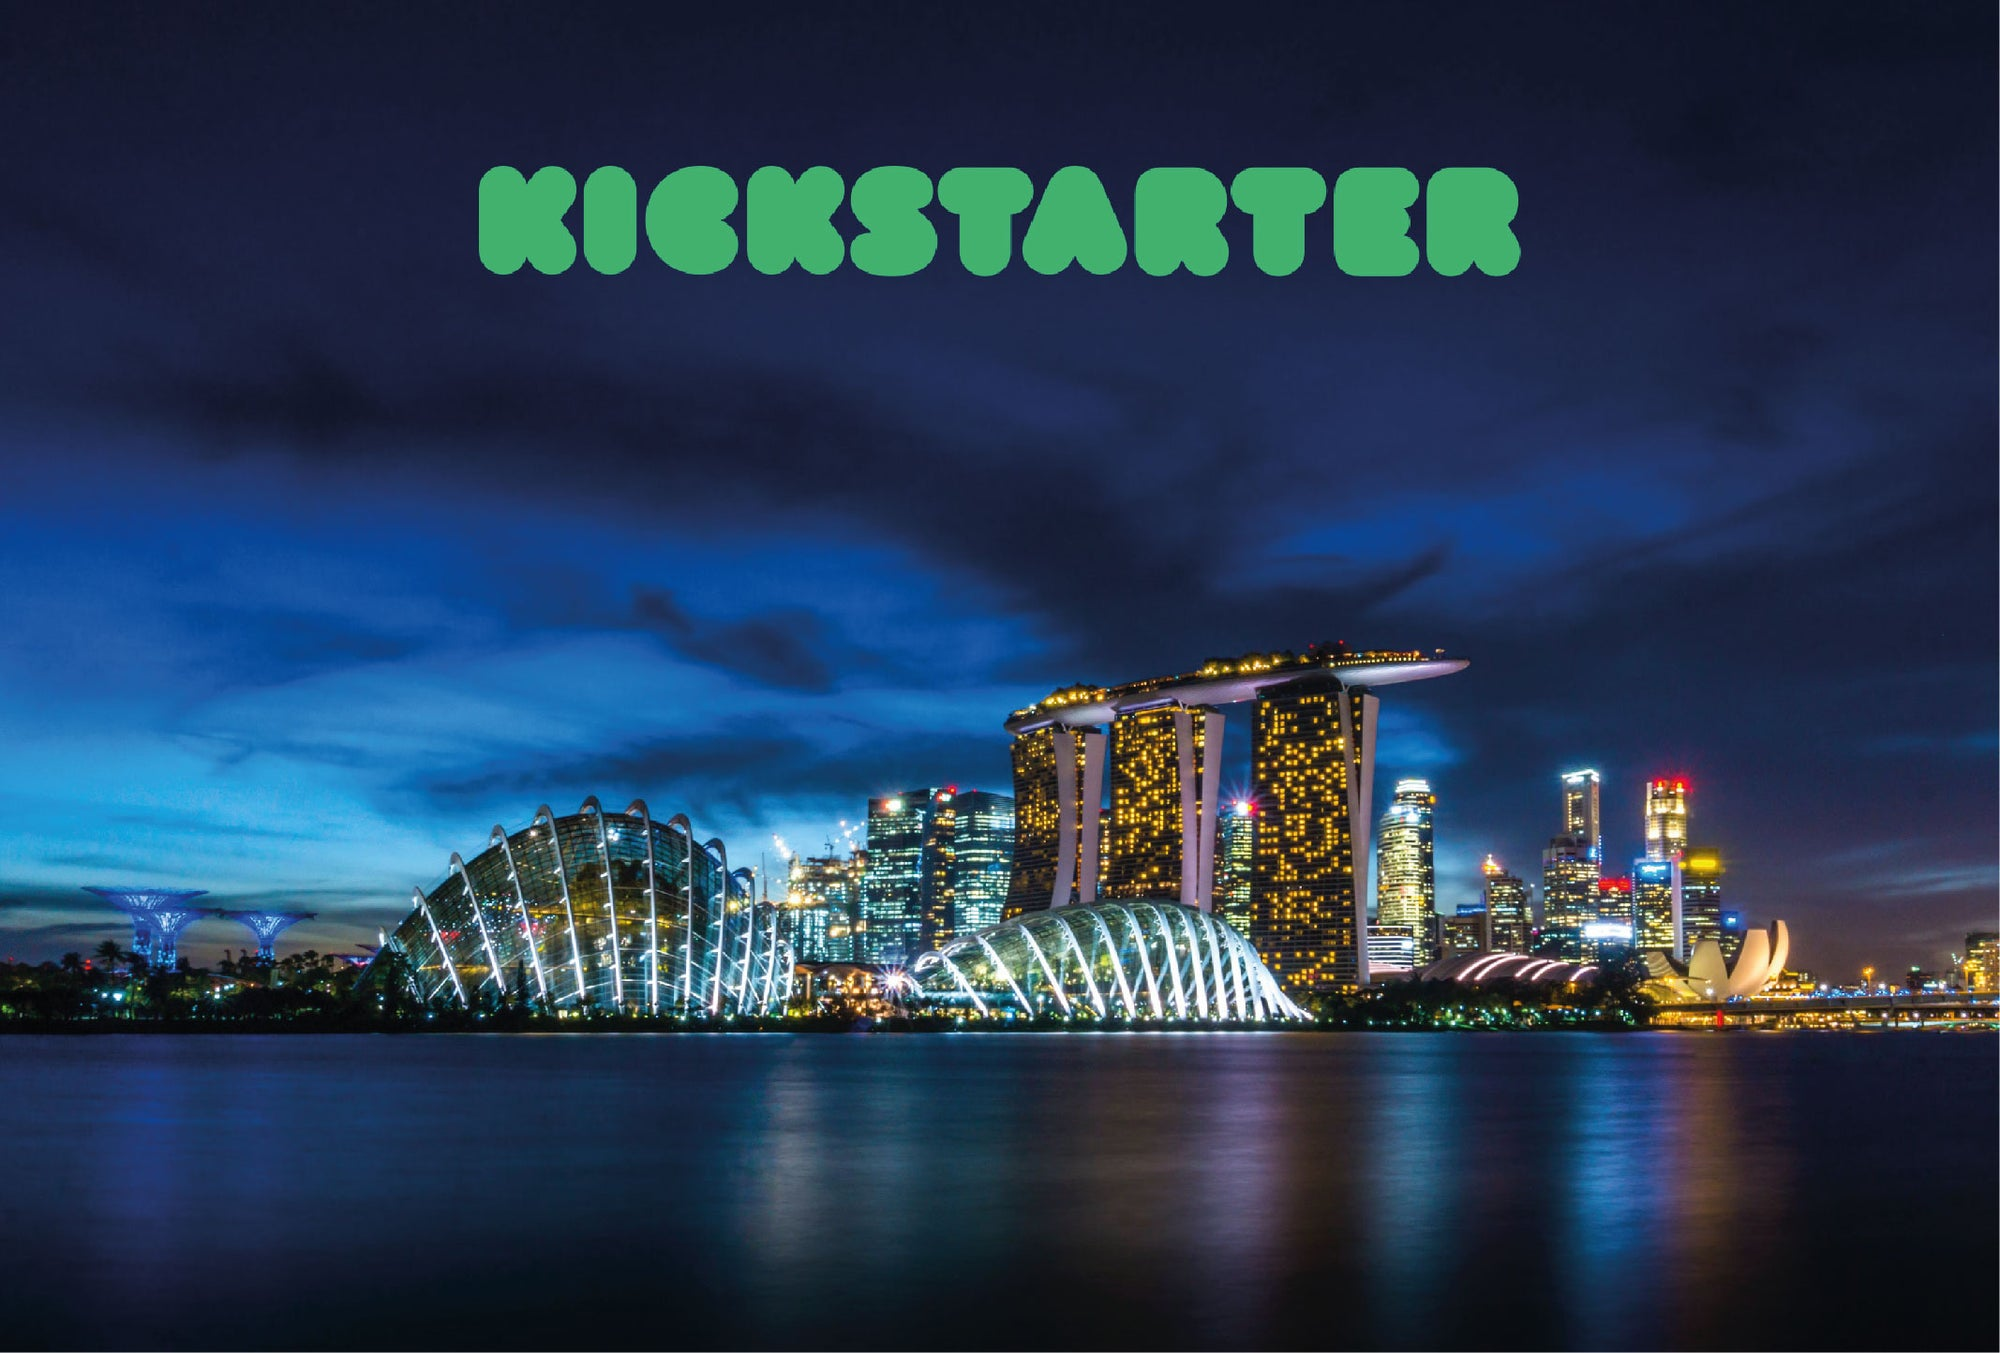 Crowdfunding & Kickstarter: Singapore accounts for the largest amount of backers from Asia